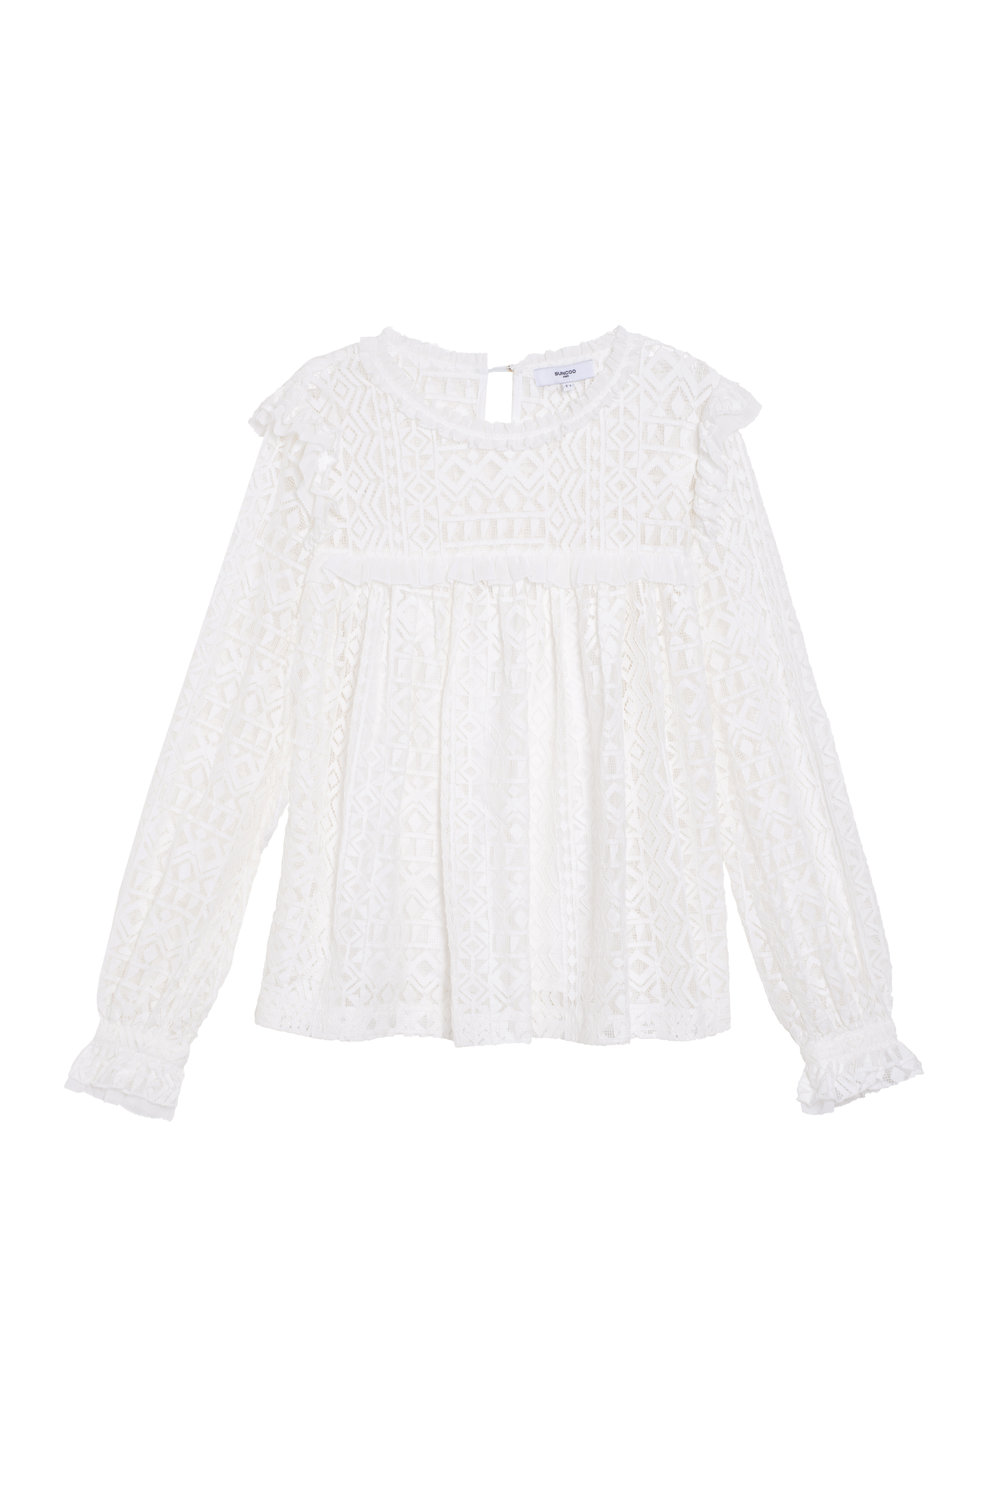 LOUP Blouse $210 - The Loup Blouse is the perfect mix of elegant and romantic. Featuring ruffles at the shoulders and long puff sleeves, this lace top can take you from Thanksgiving at grandma's house to drinks with friends. Pair it with your favorite denim or velvet and heels to elevate the look.